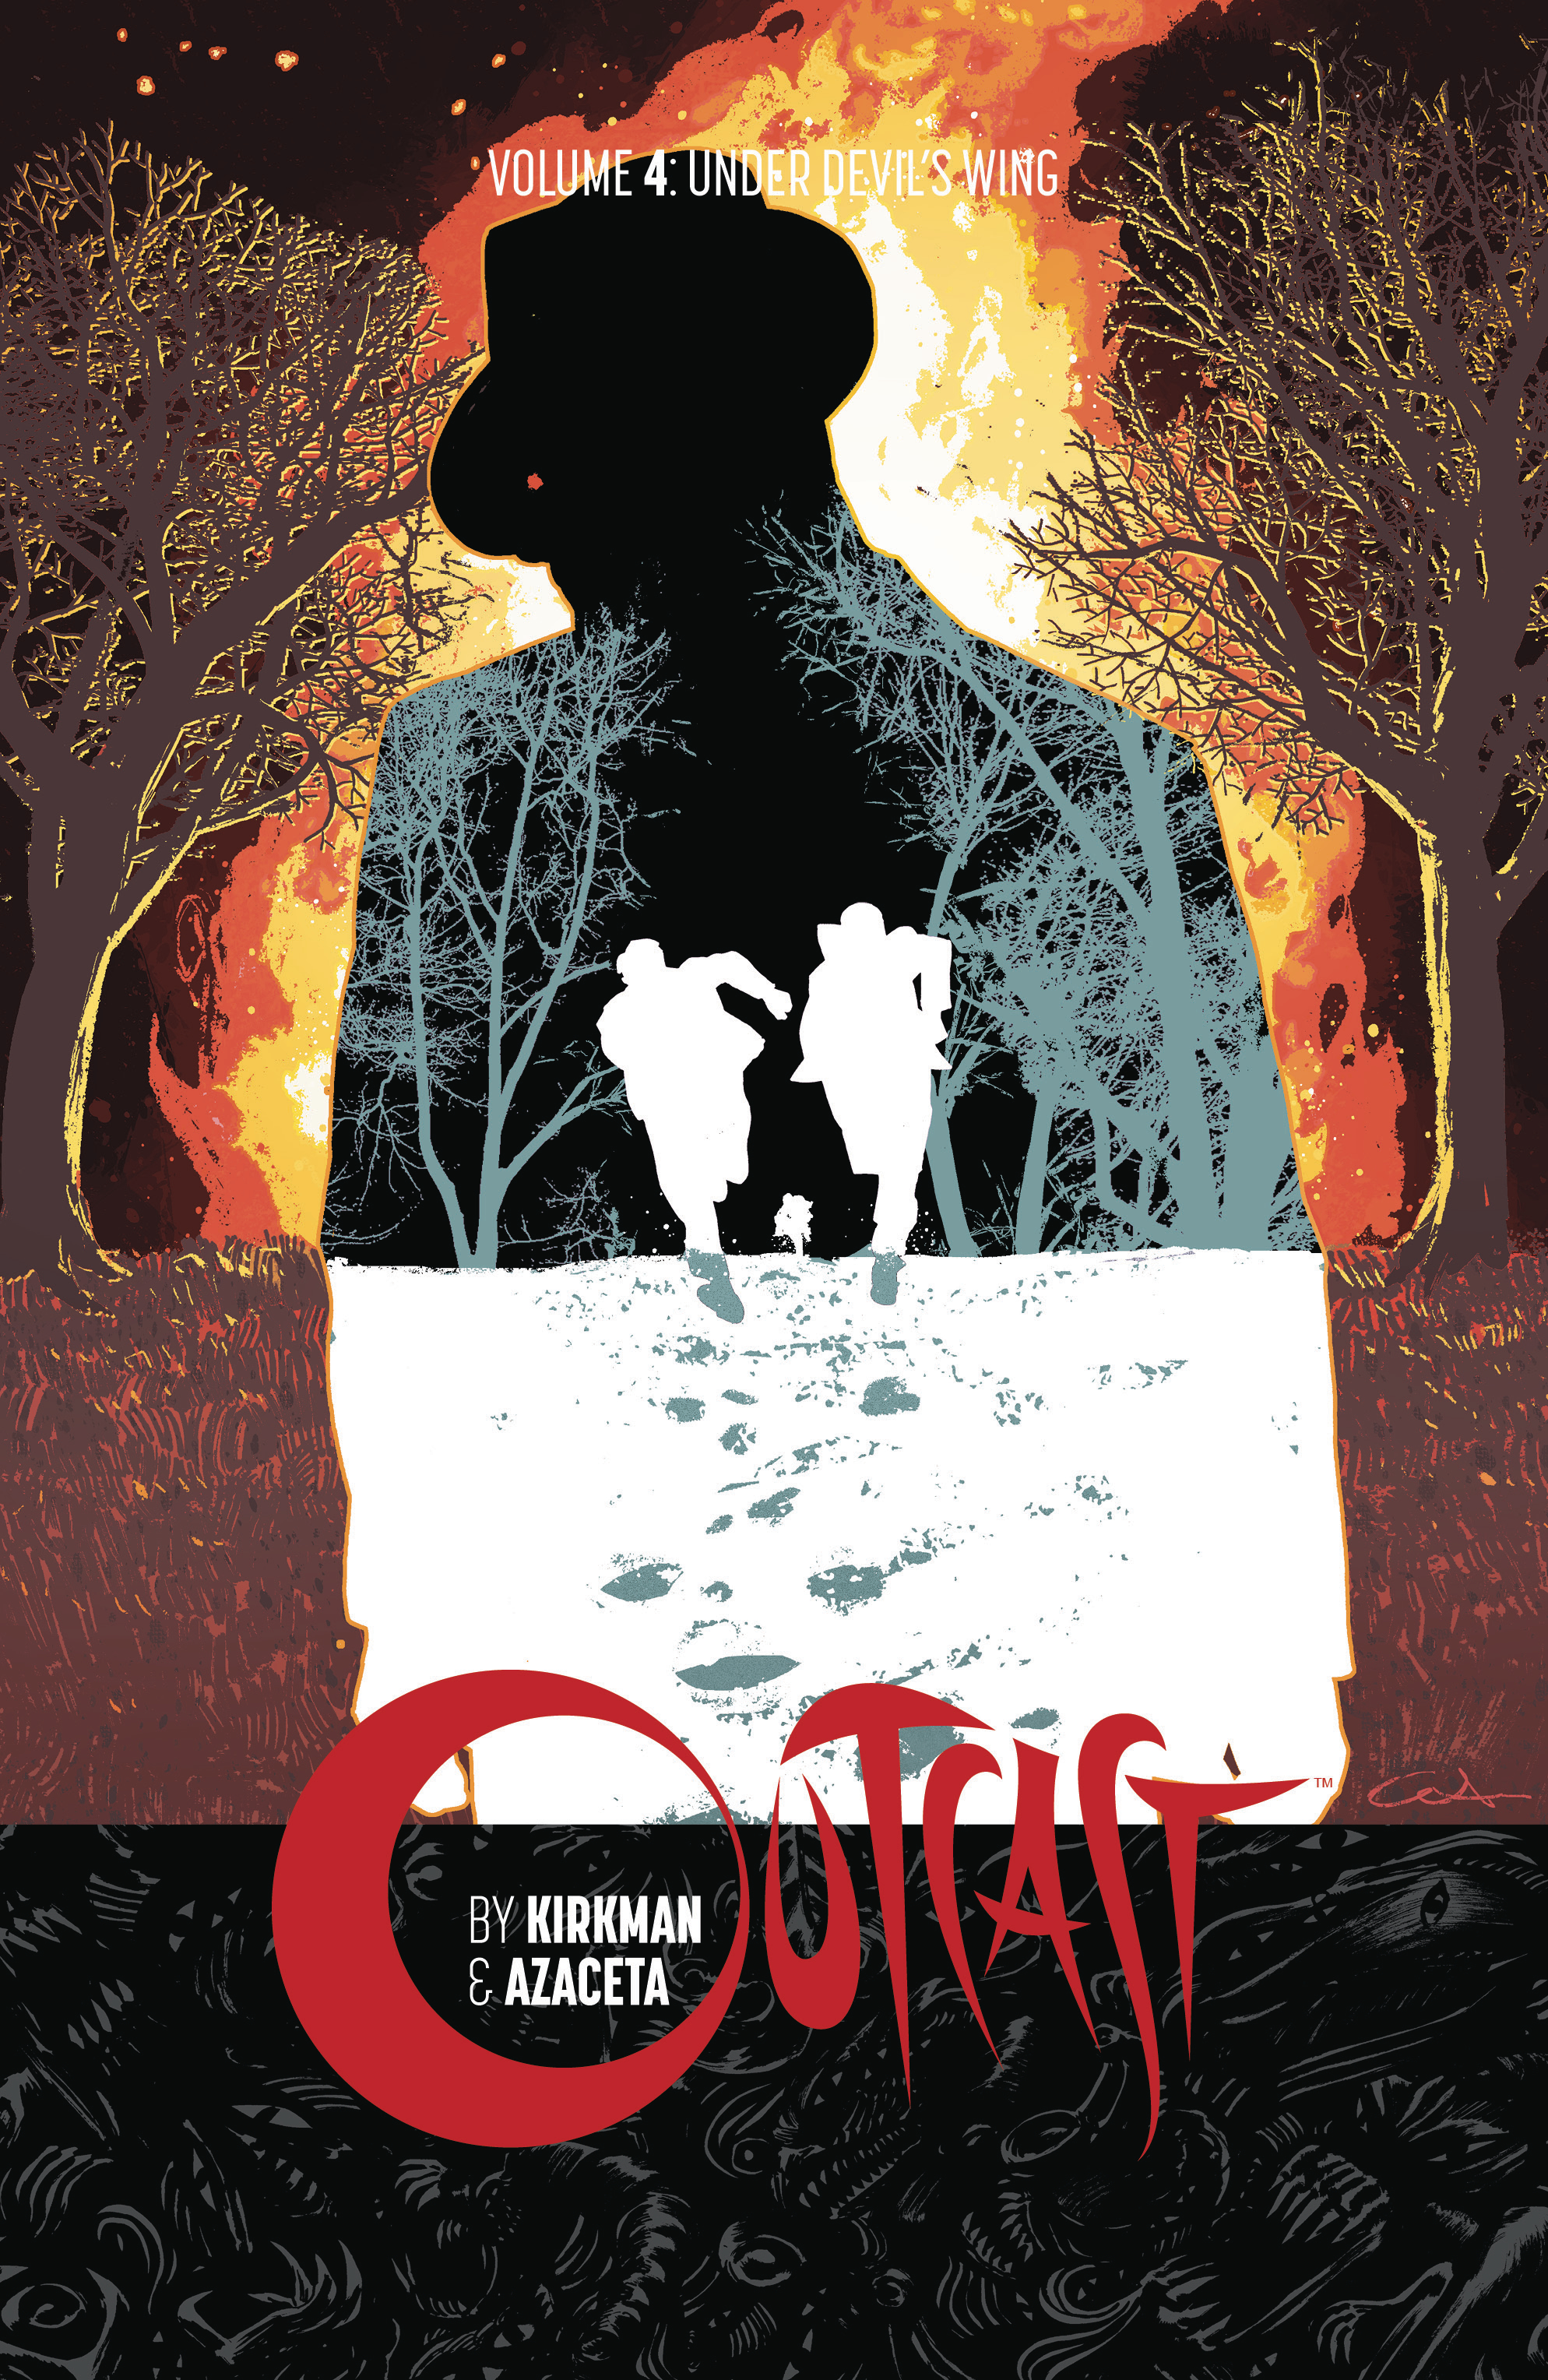 OUTCAST BY KIRKMAN & AZACETA TP VOL 04 (MR)